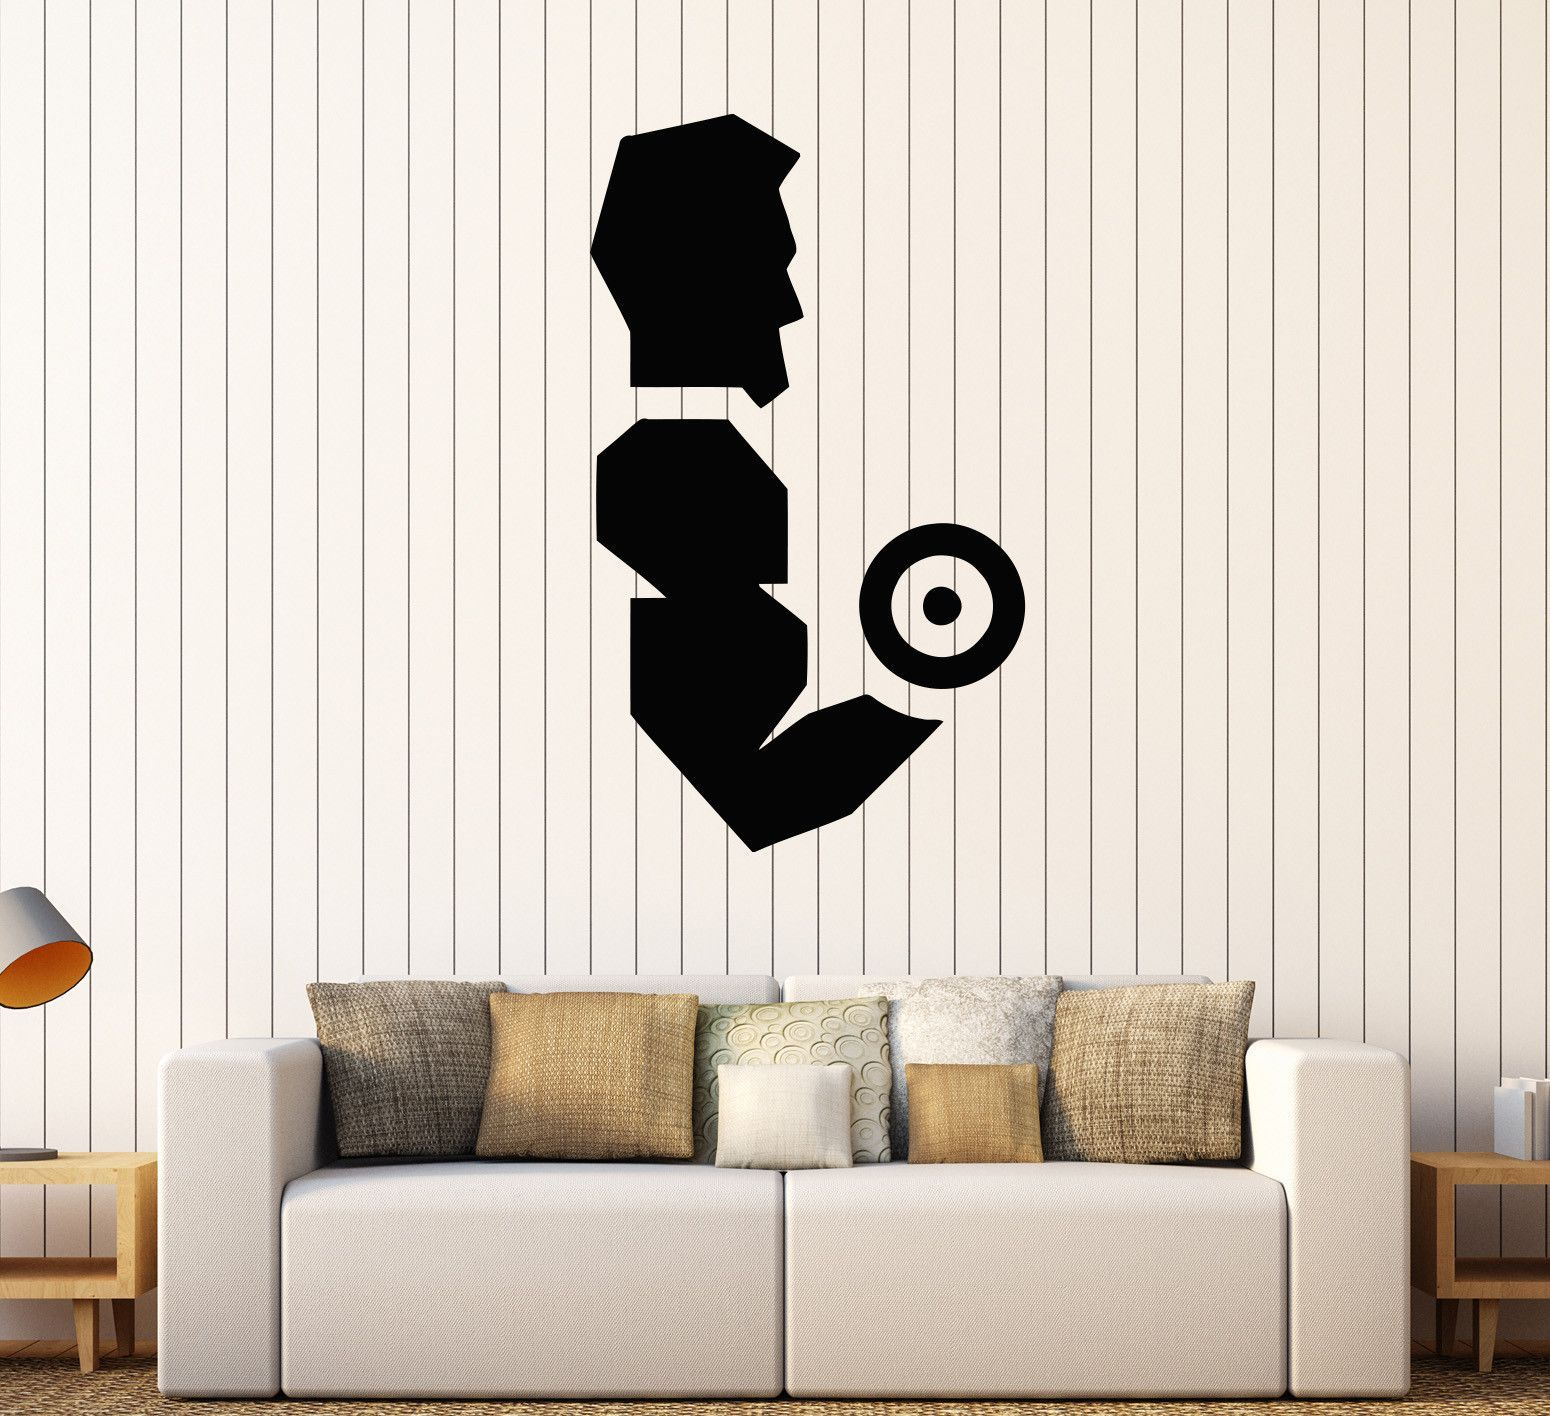 Vinyl Wall Decal Gym Bodybuilding Fitness Center Dumbbell Stickers - How to put up a vinyl wall sticker